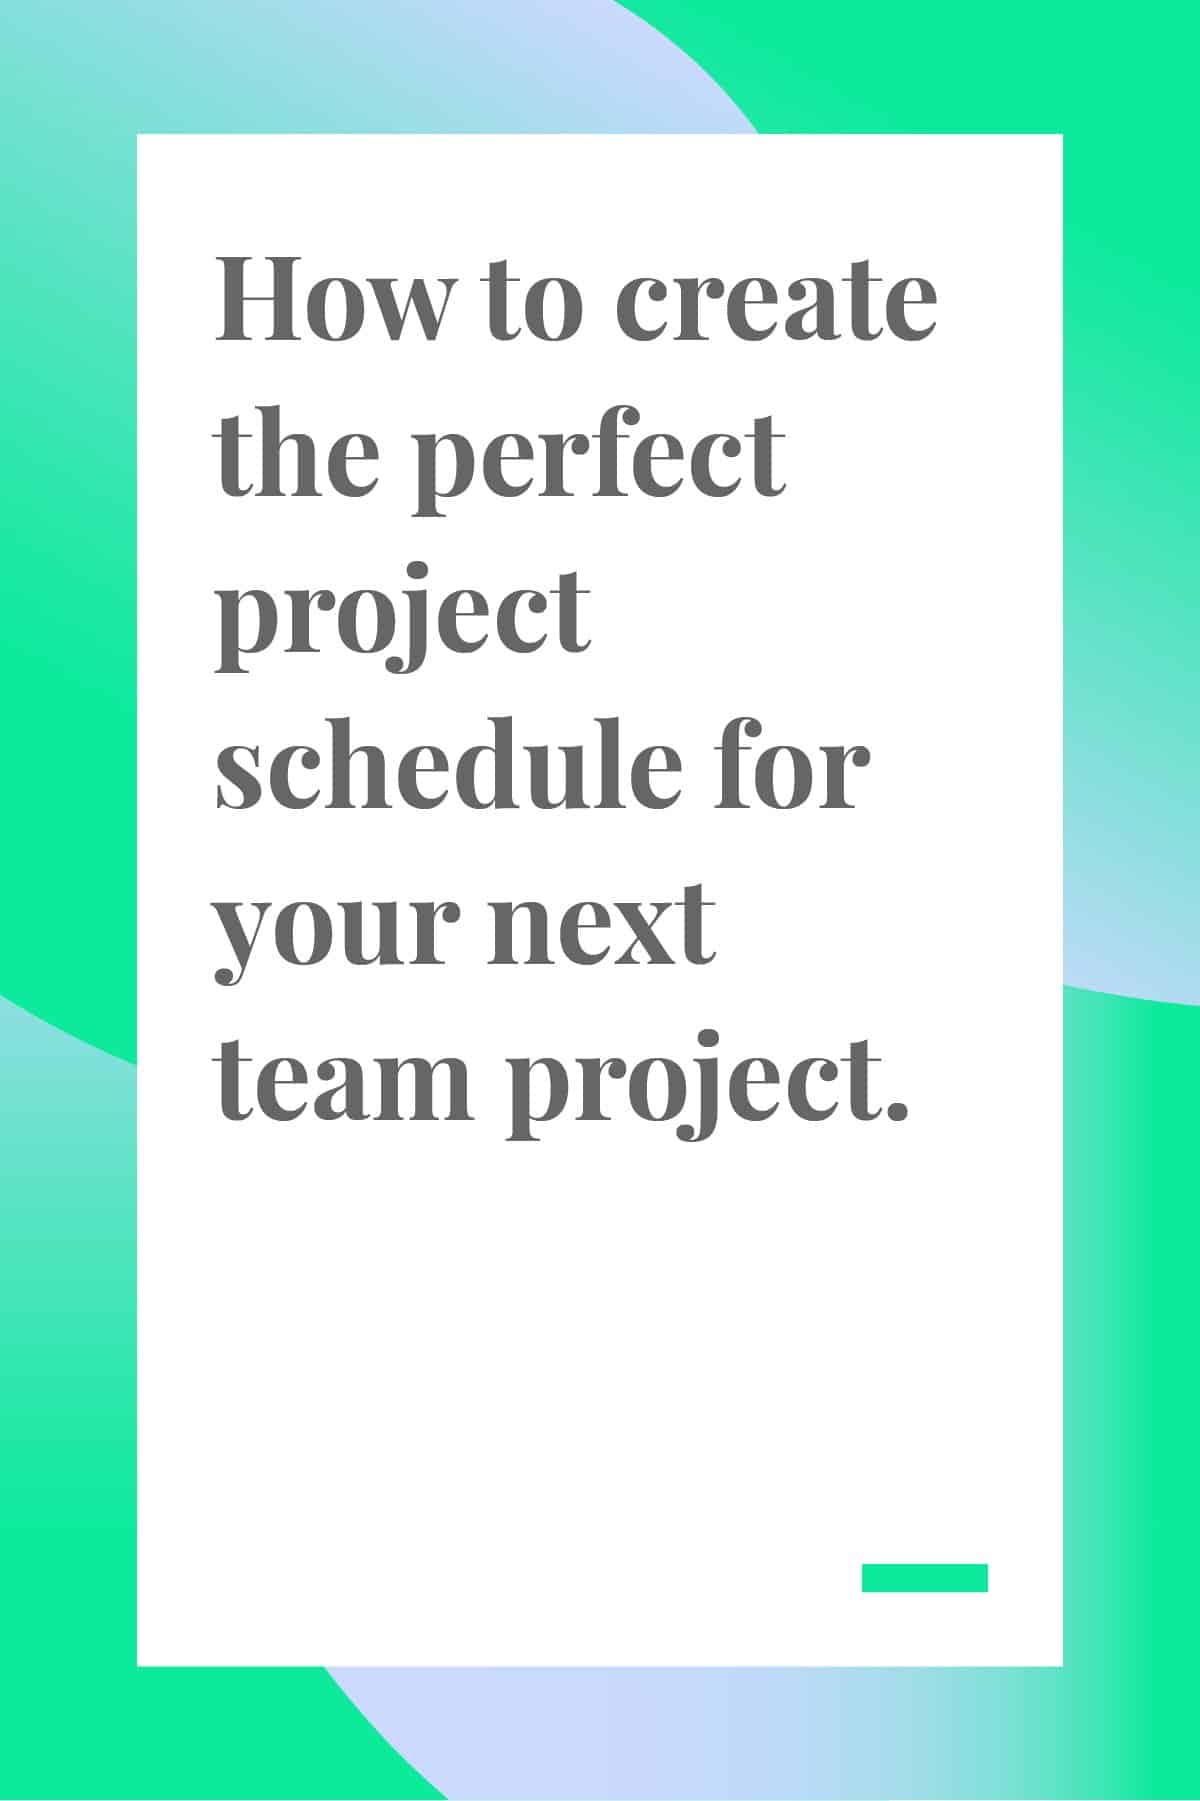 Project schedules aren't always easy to make. Depending on the project, you can have a schedule that's clean and straightforward, or a tangled up pile of tasks. Here's a step-by-step way to create the perfect project schedule for your next team project. #teamwork #manager